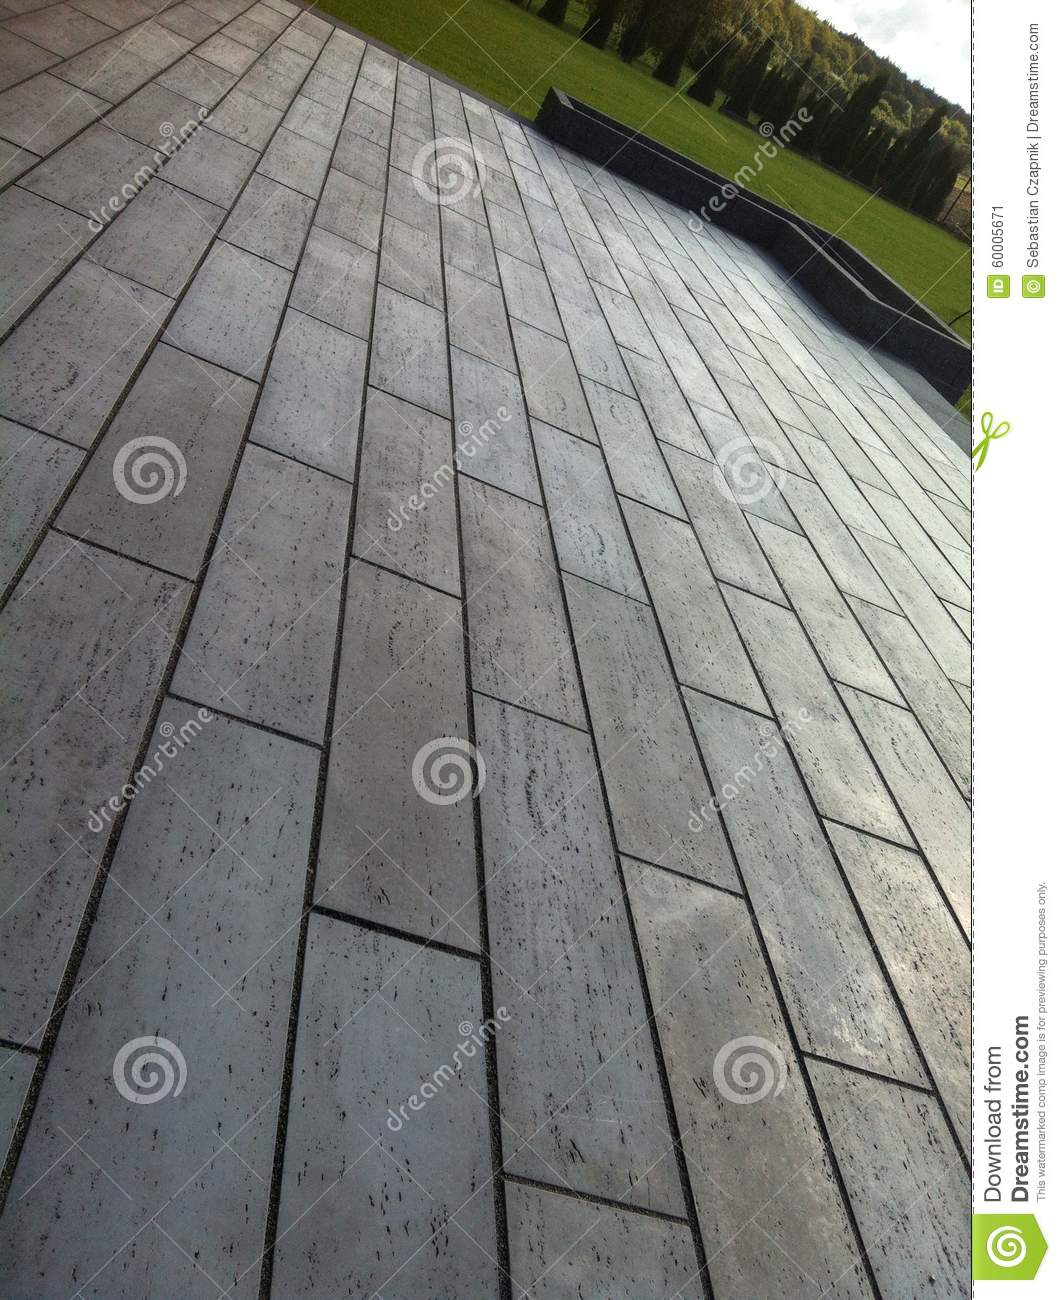 Modern terrace of concrete tiles stock image image of for Terrace tiles